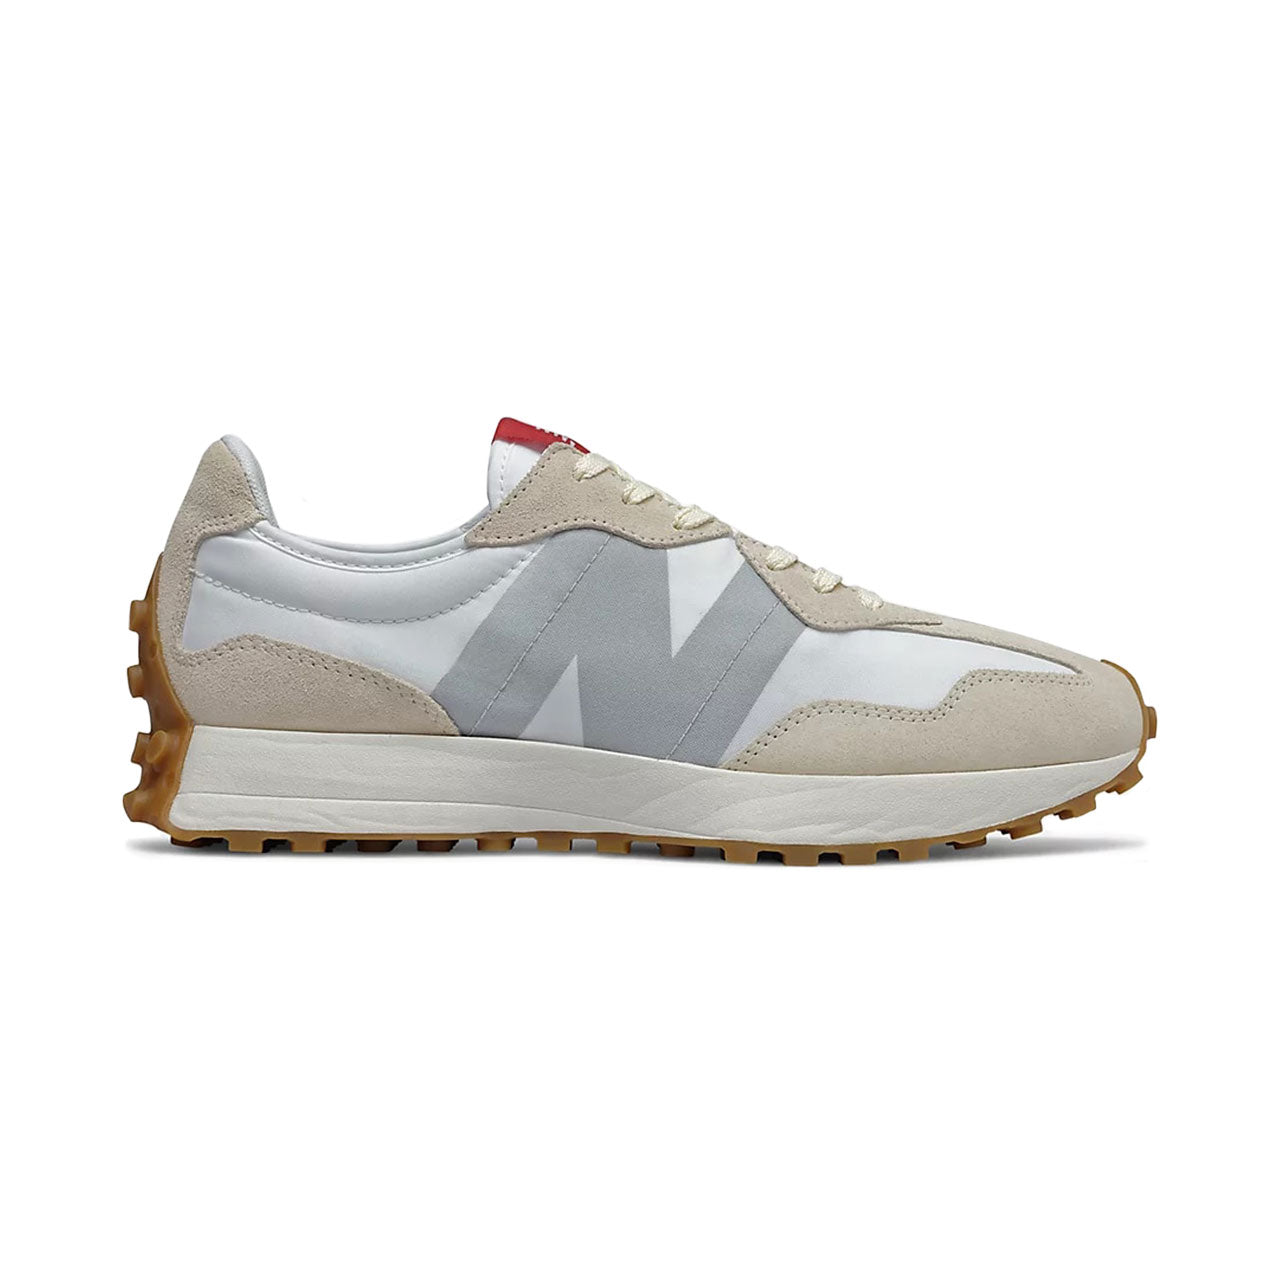 New Balance 327 White Gum Sole Sneakers